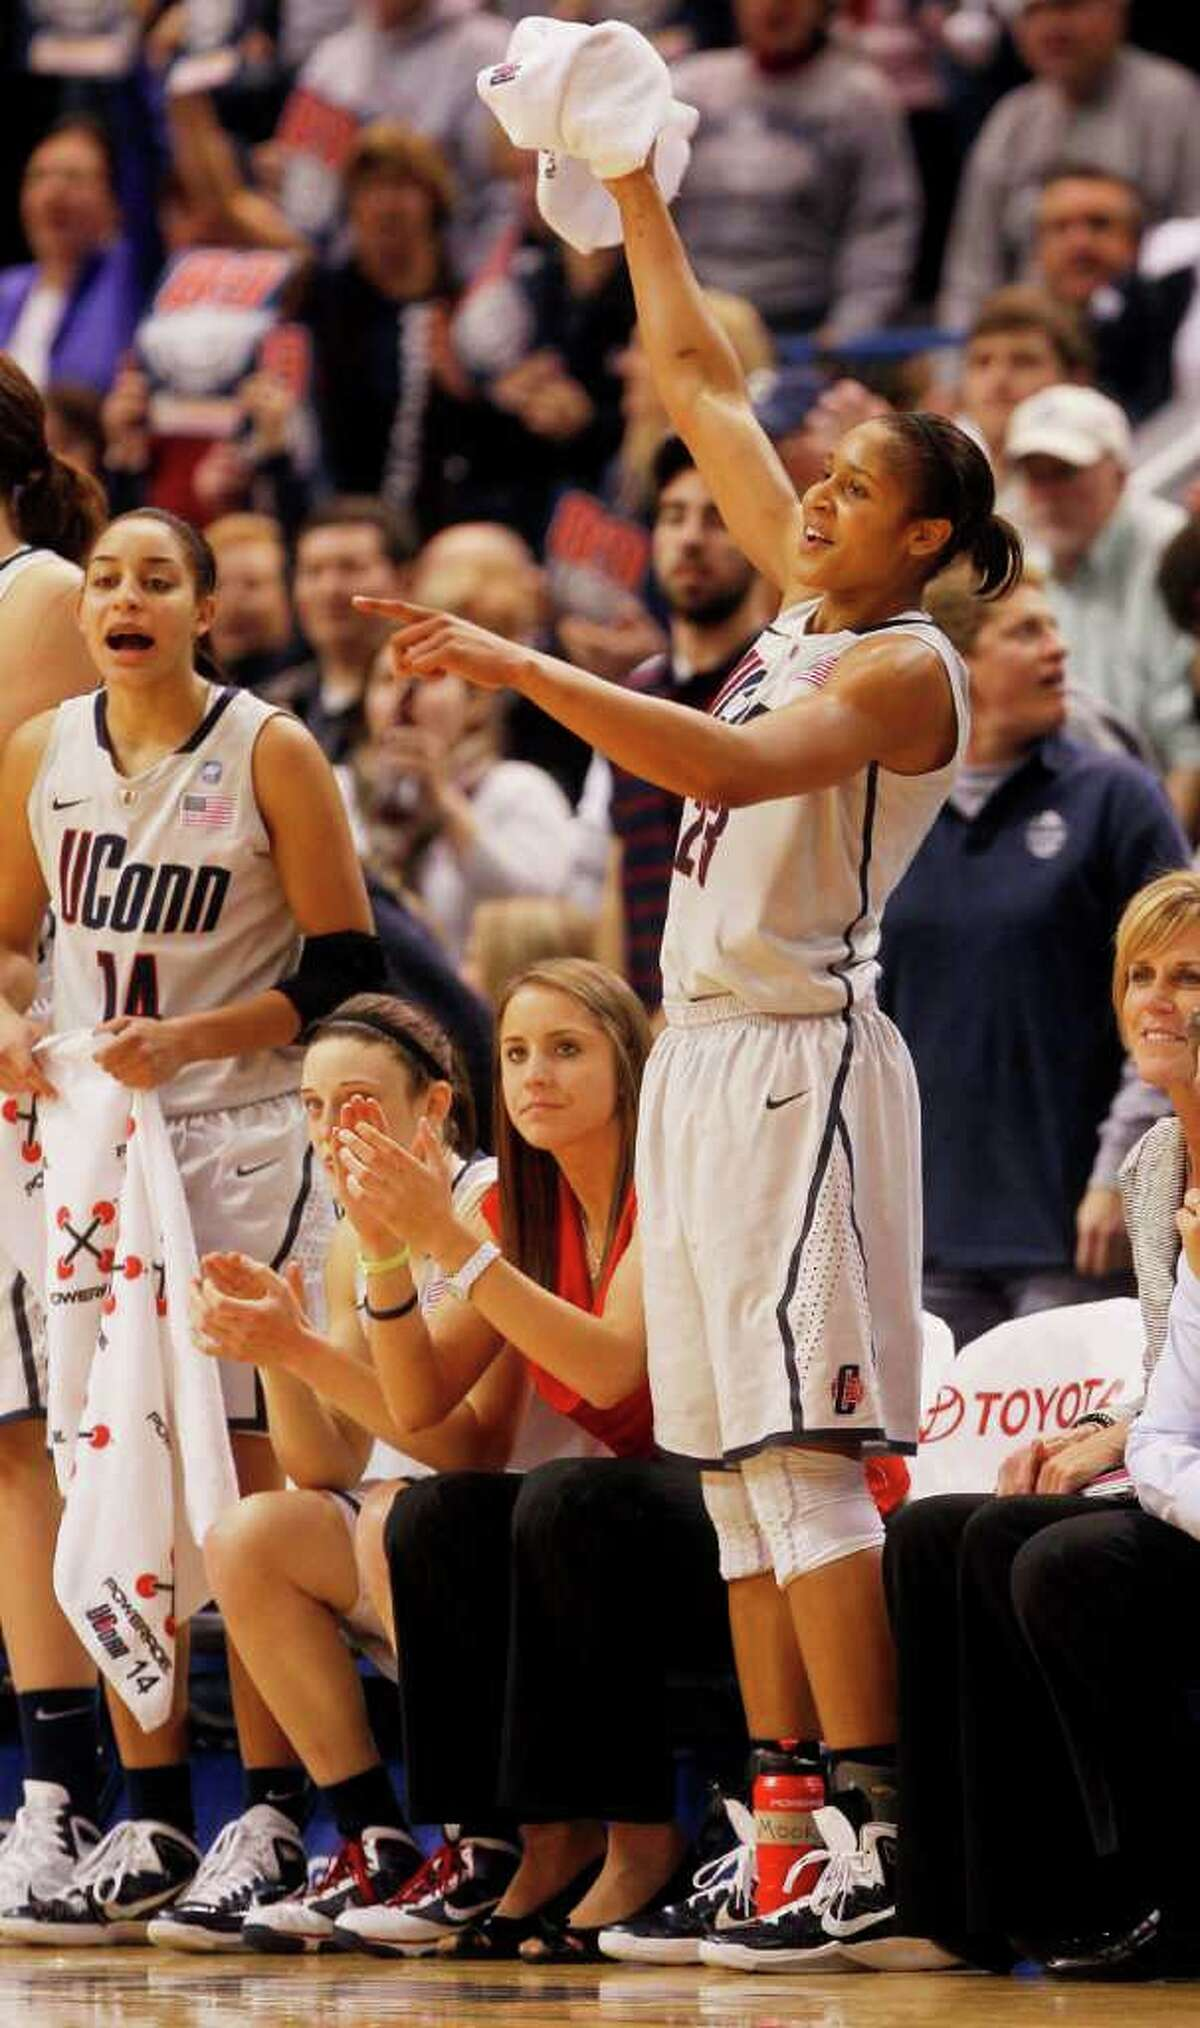 HARTFORD, CT - DECEMBER 21: Maya Moore #23 of the Connecticut celebrates in the final minutes of a win over Florida State on December 21, 2010 in Hartford, Connecticut. Connecticut set a record with 89 straight wins without a defeat. (Photo by Jim Rogash/Getty Images) *** Local Caption *** Maya Moore